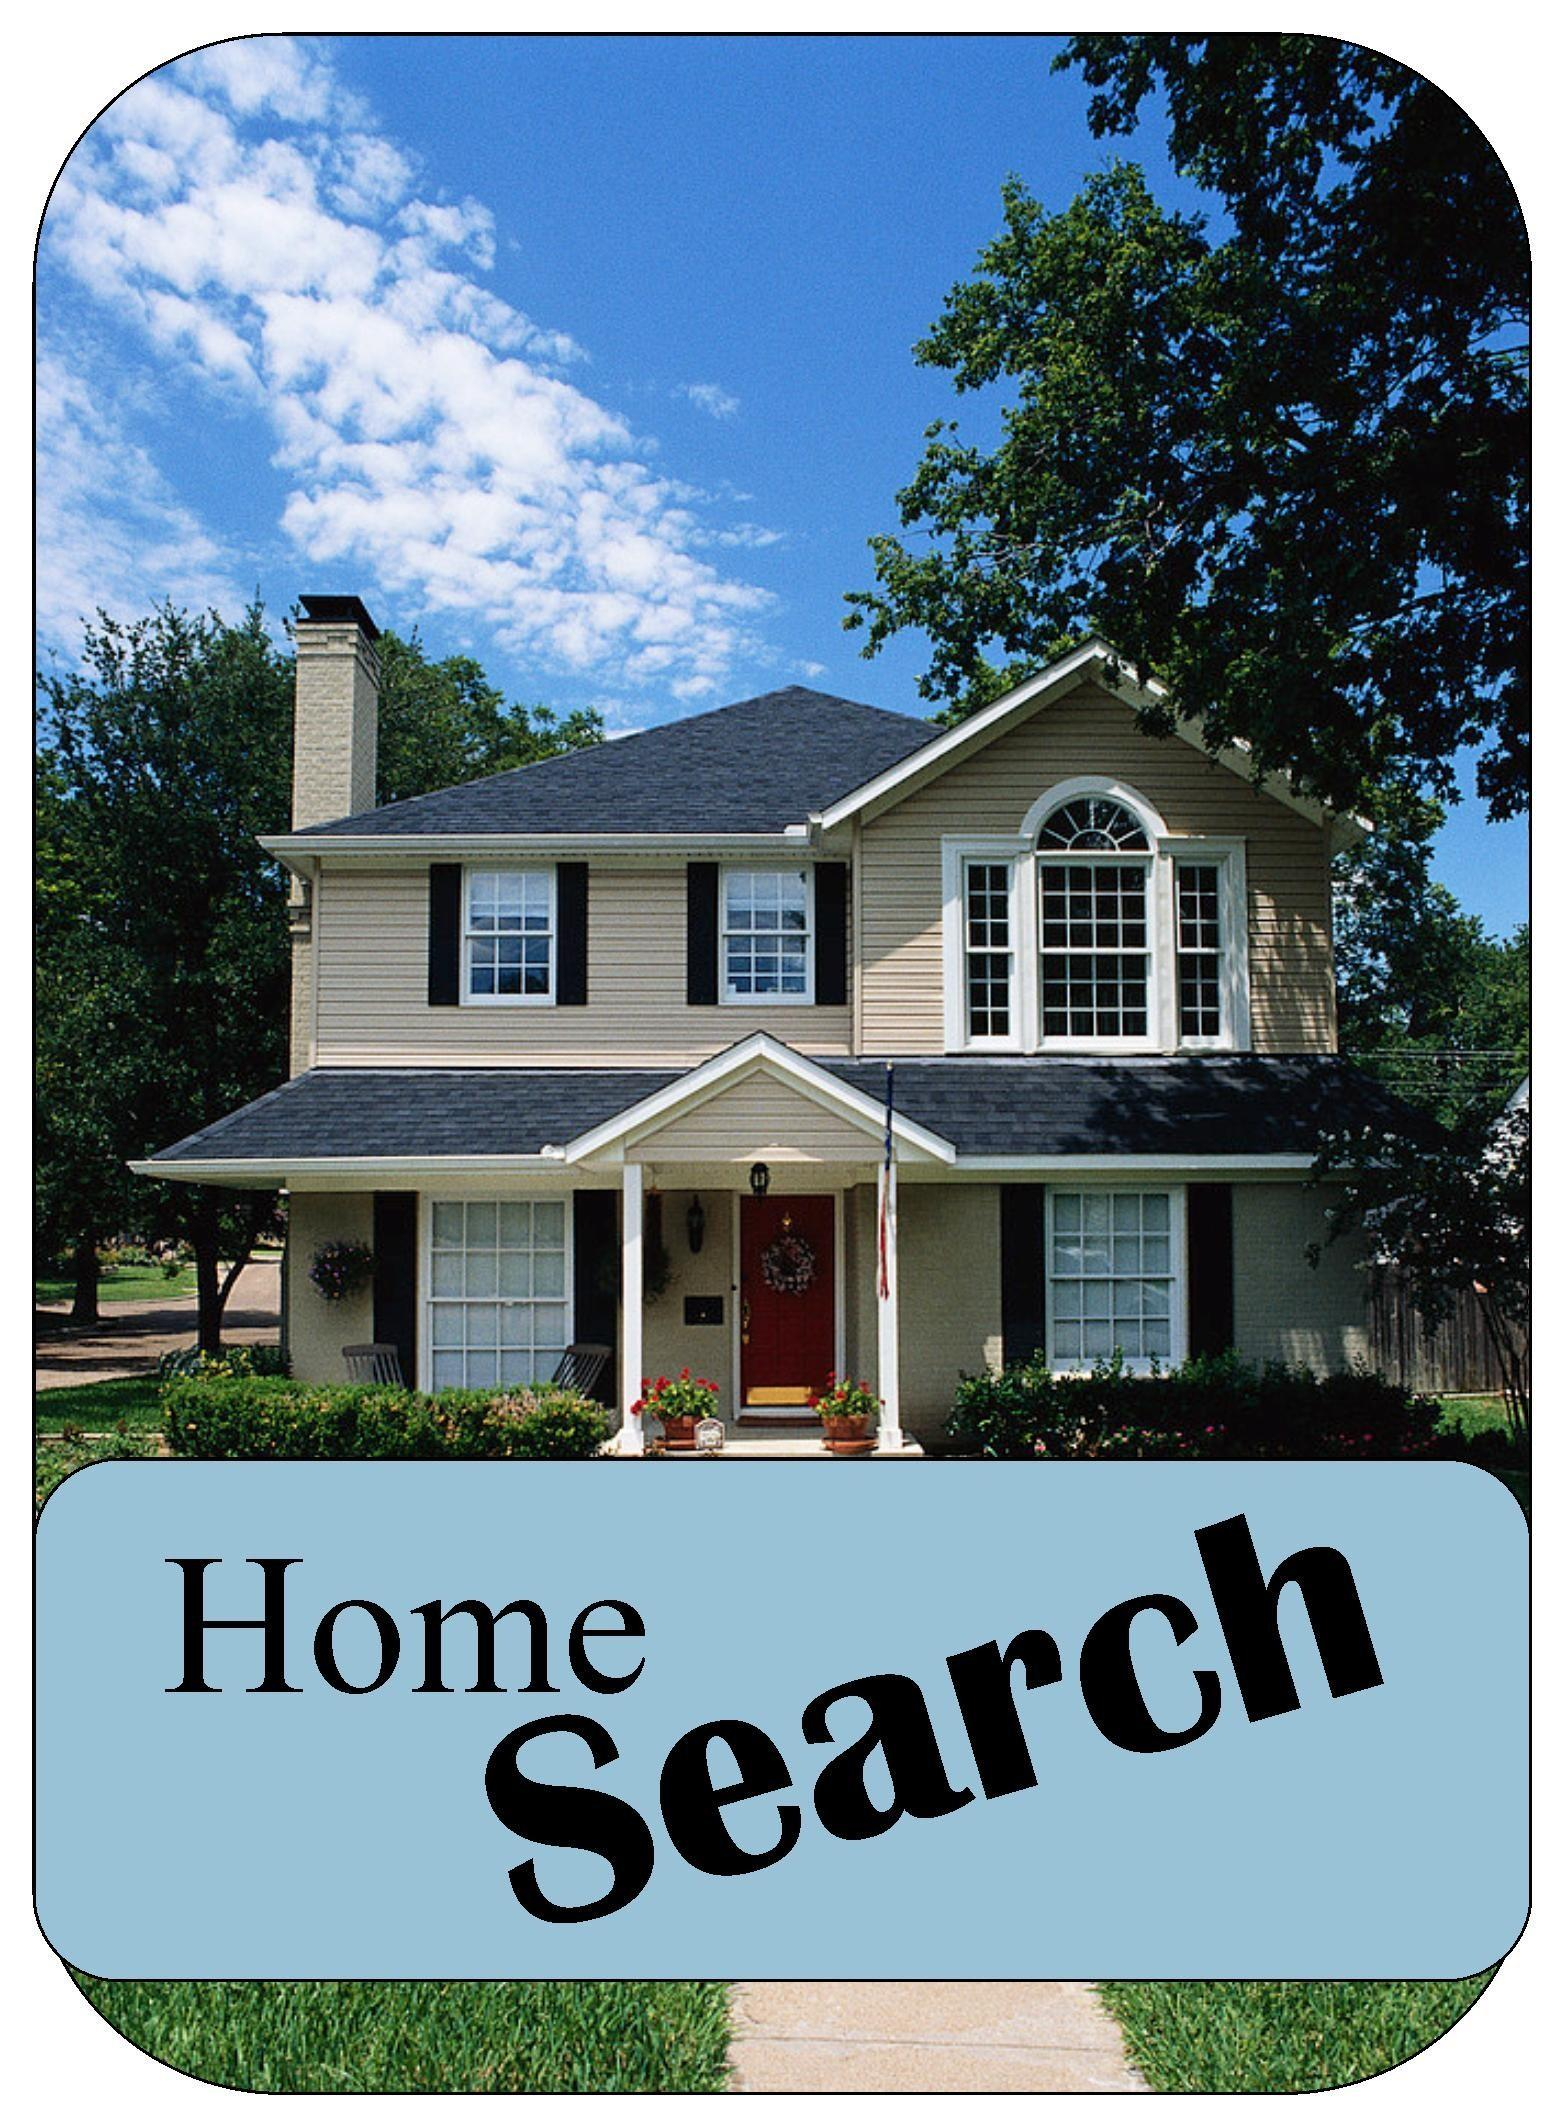 Search the entire Charlotte & surrounding area here!